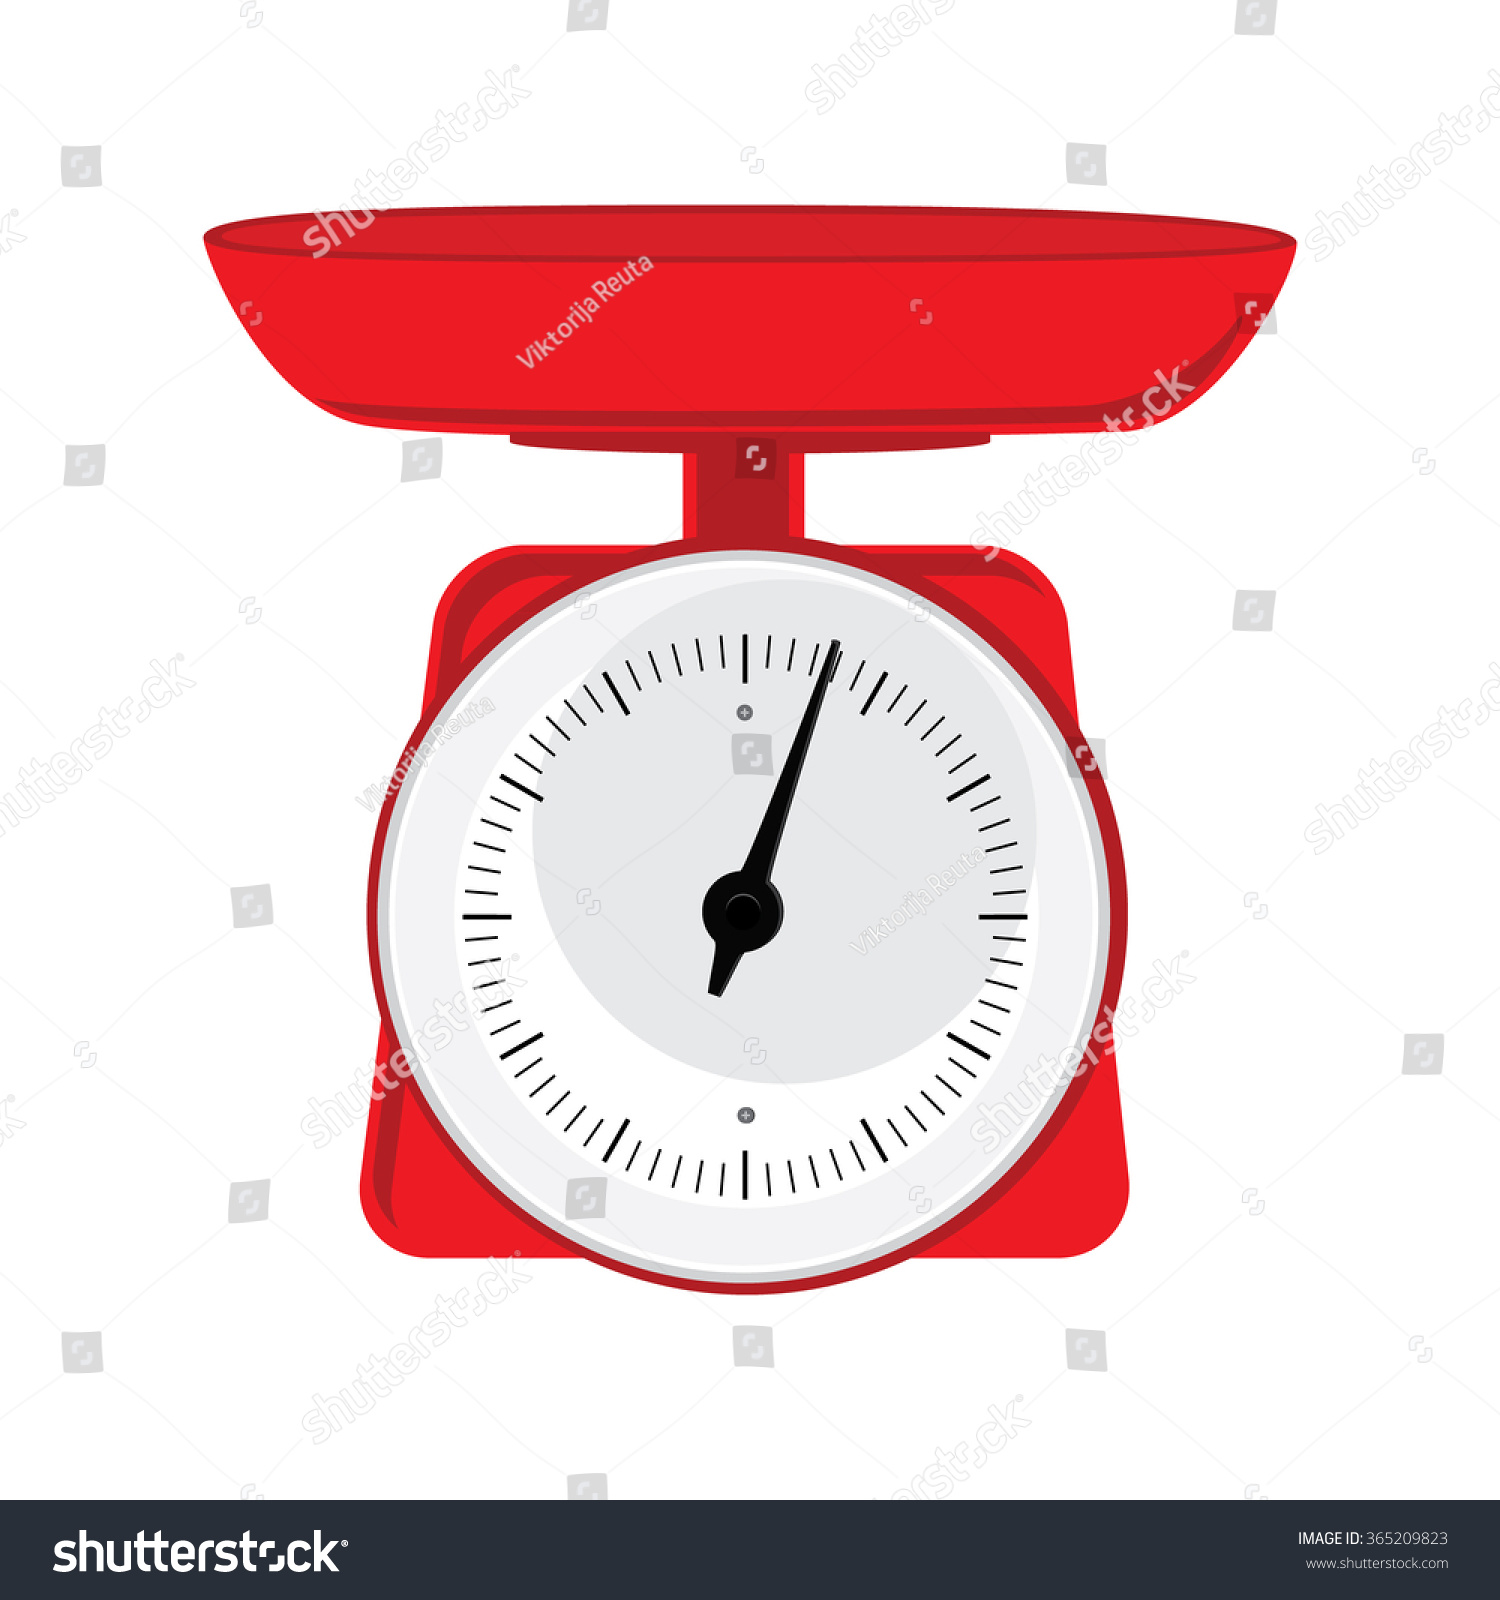 Weight Scales Weighing Clip Art